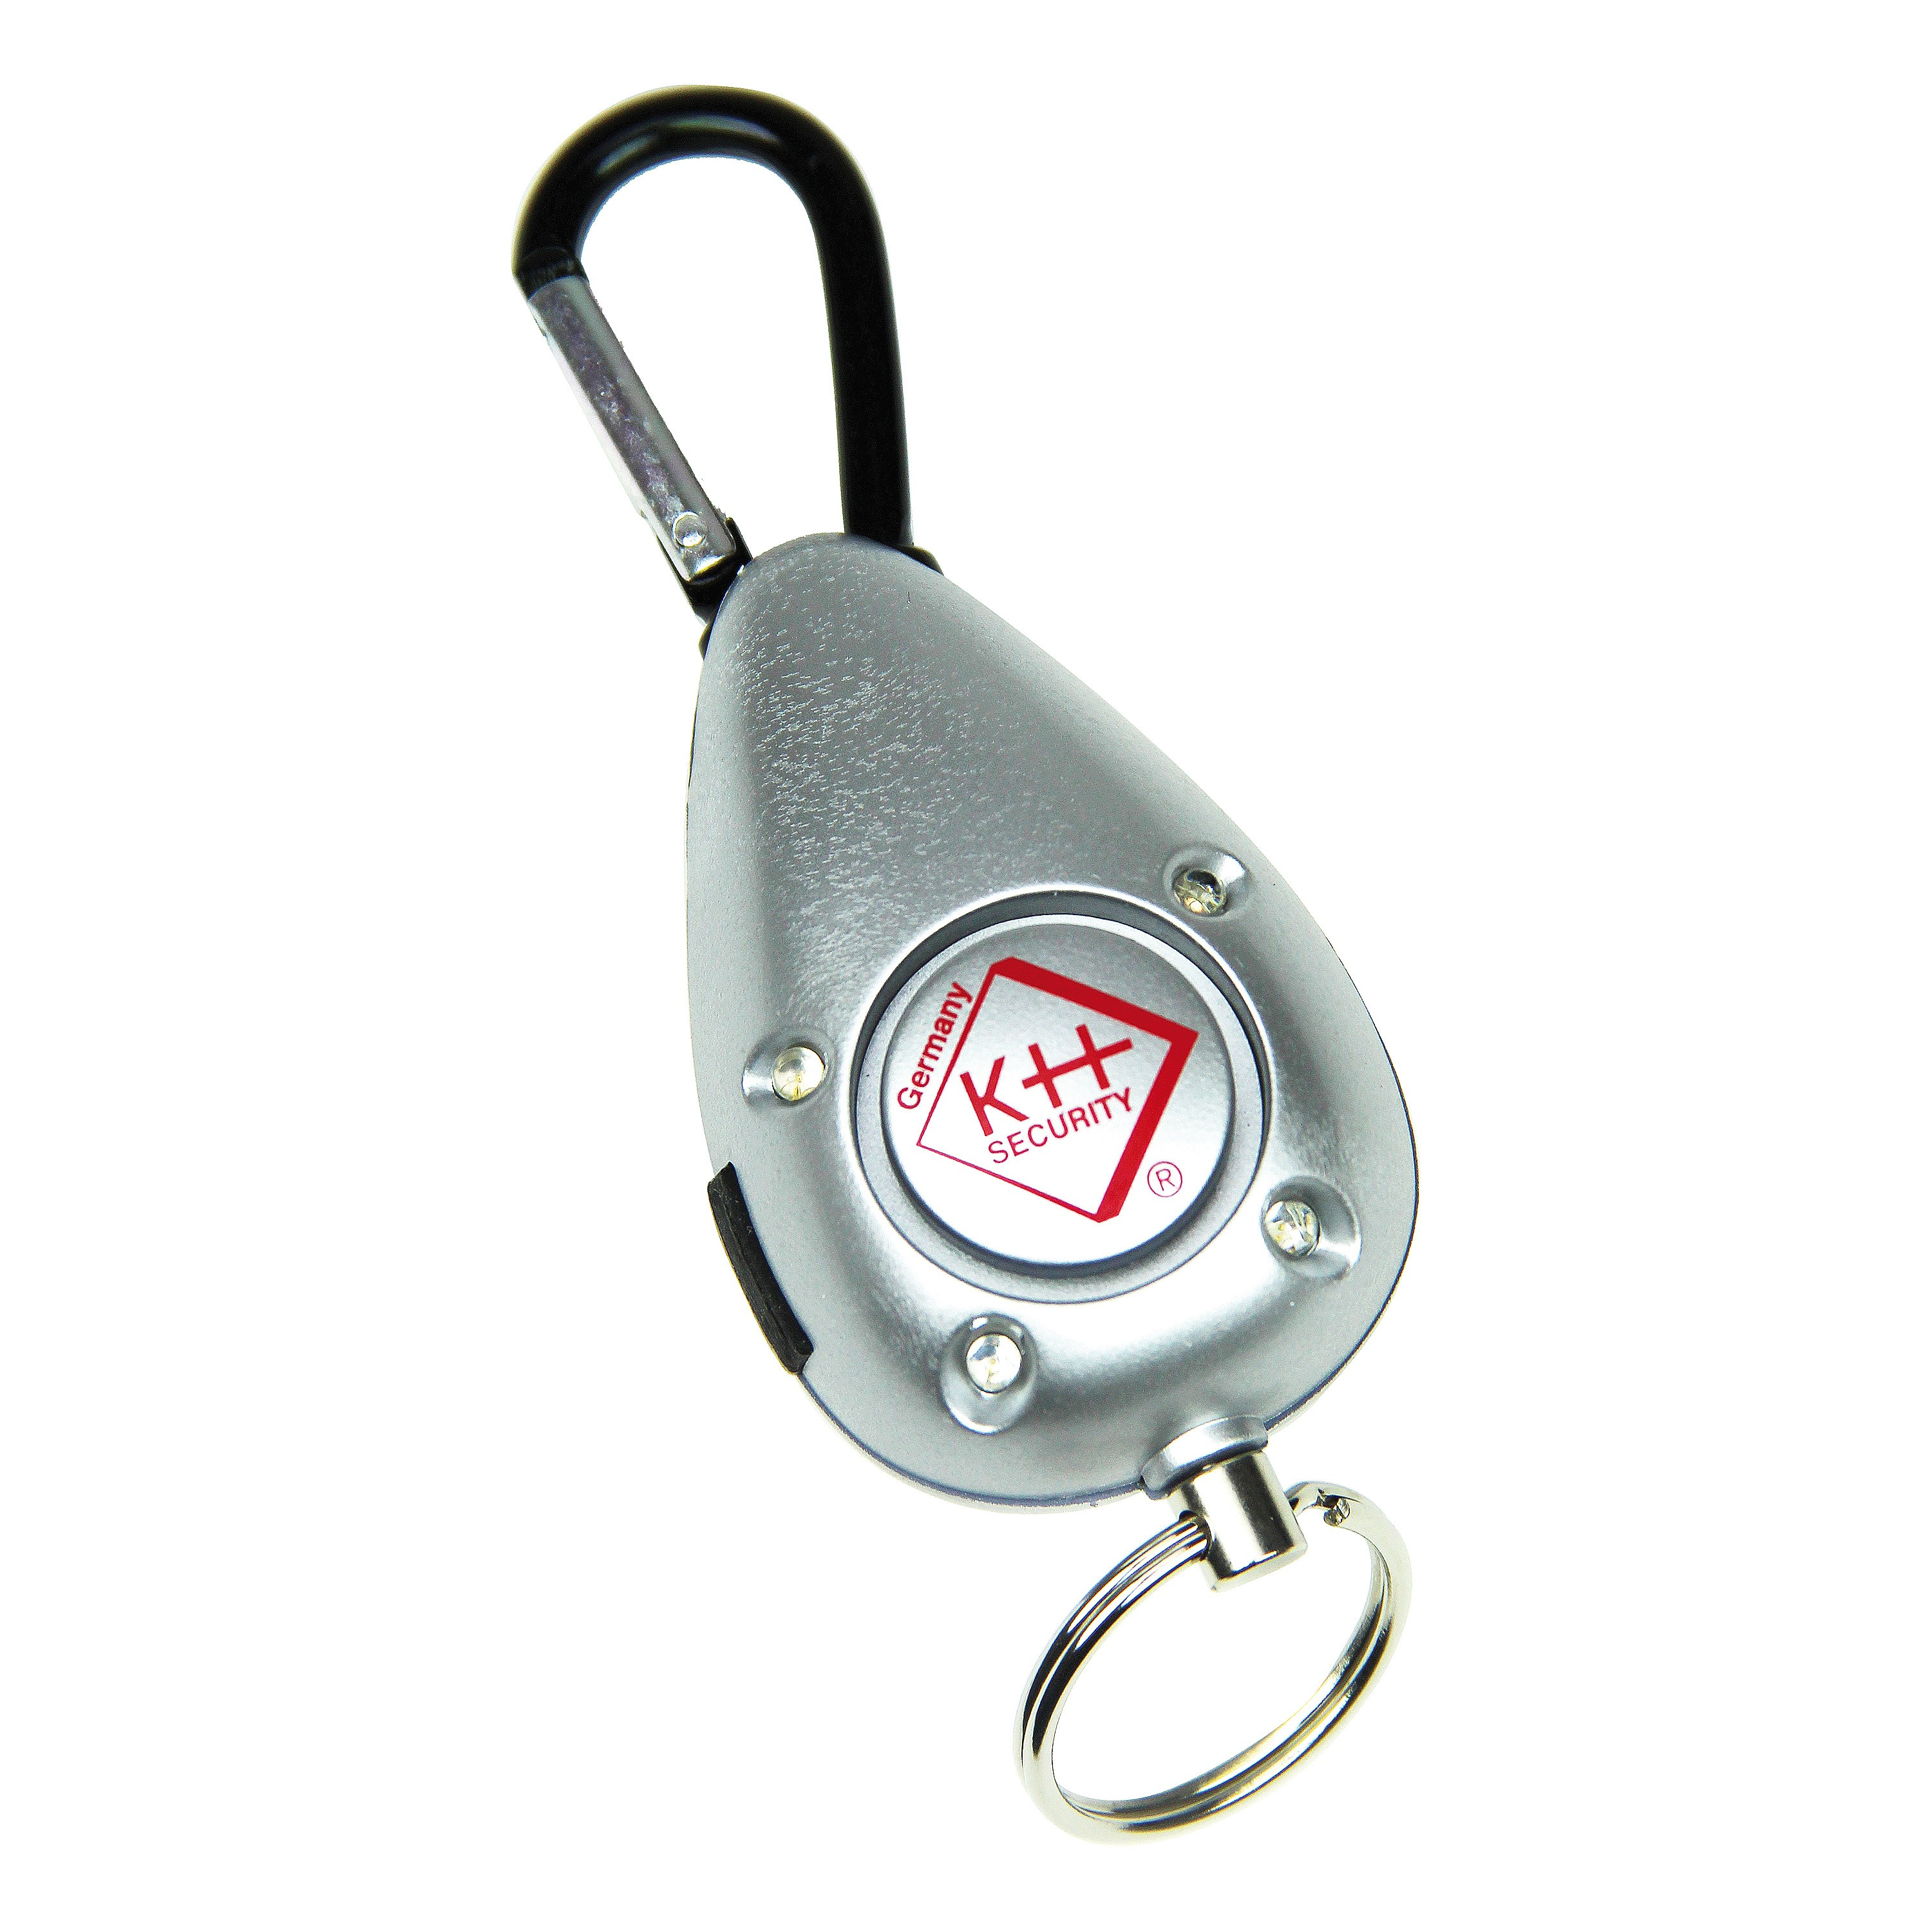 Outdoor Alarm kh-security silber